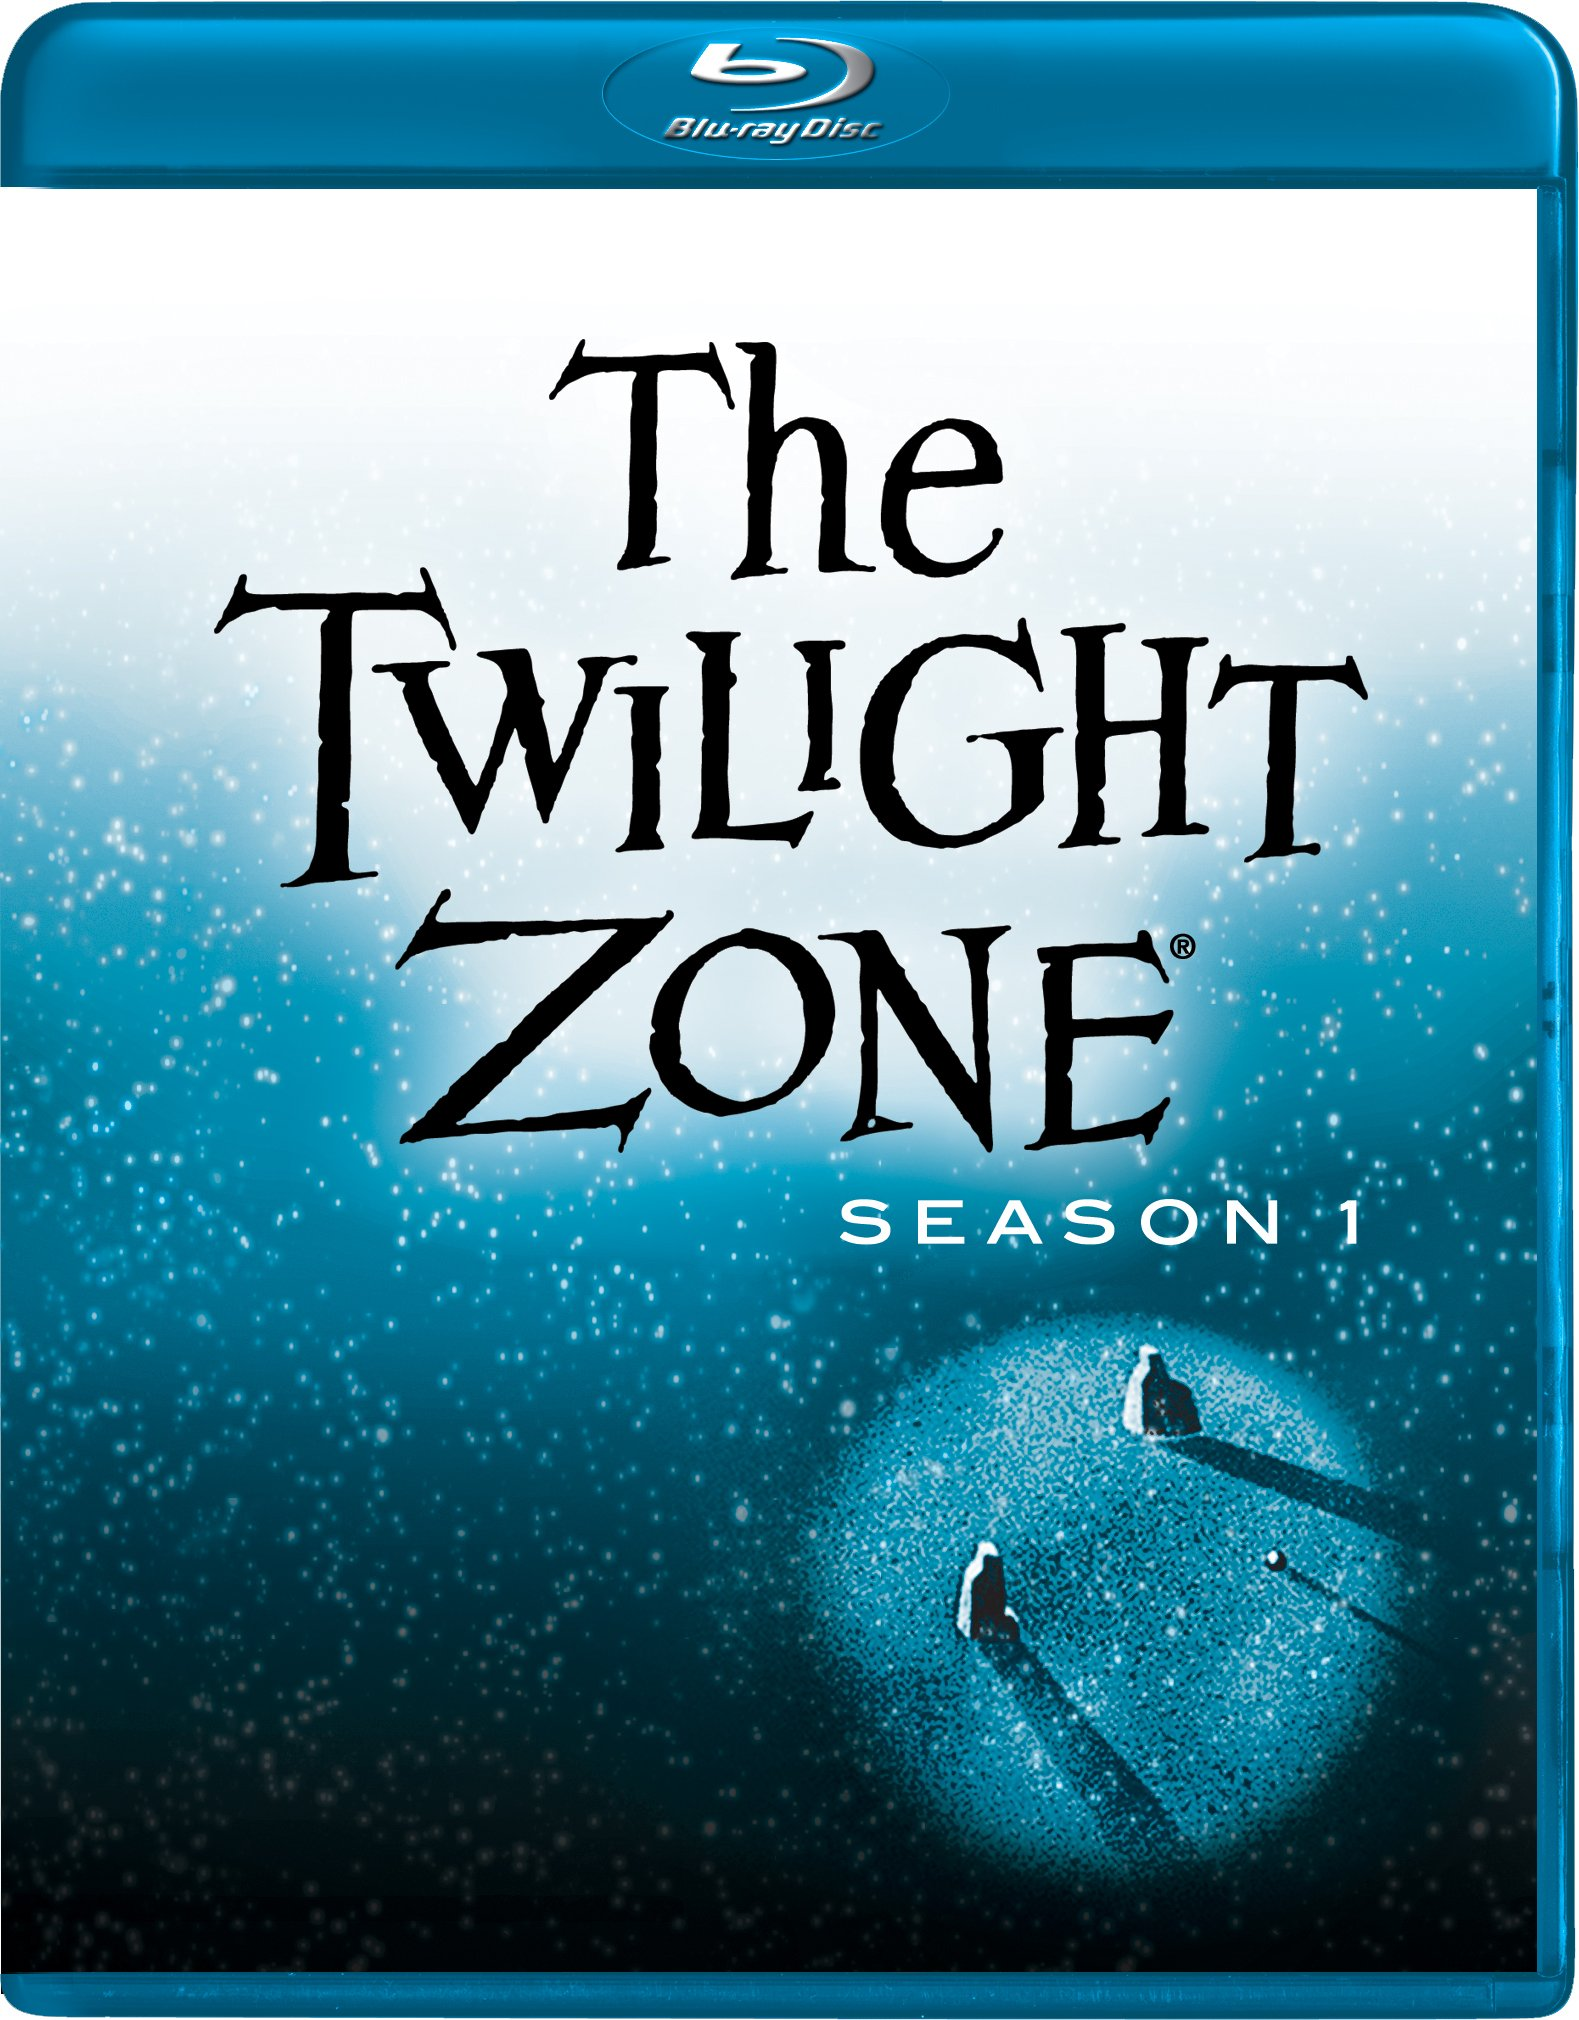 The Twilight Zone: Season 1 [Blu-ray] by Image Entertainment